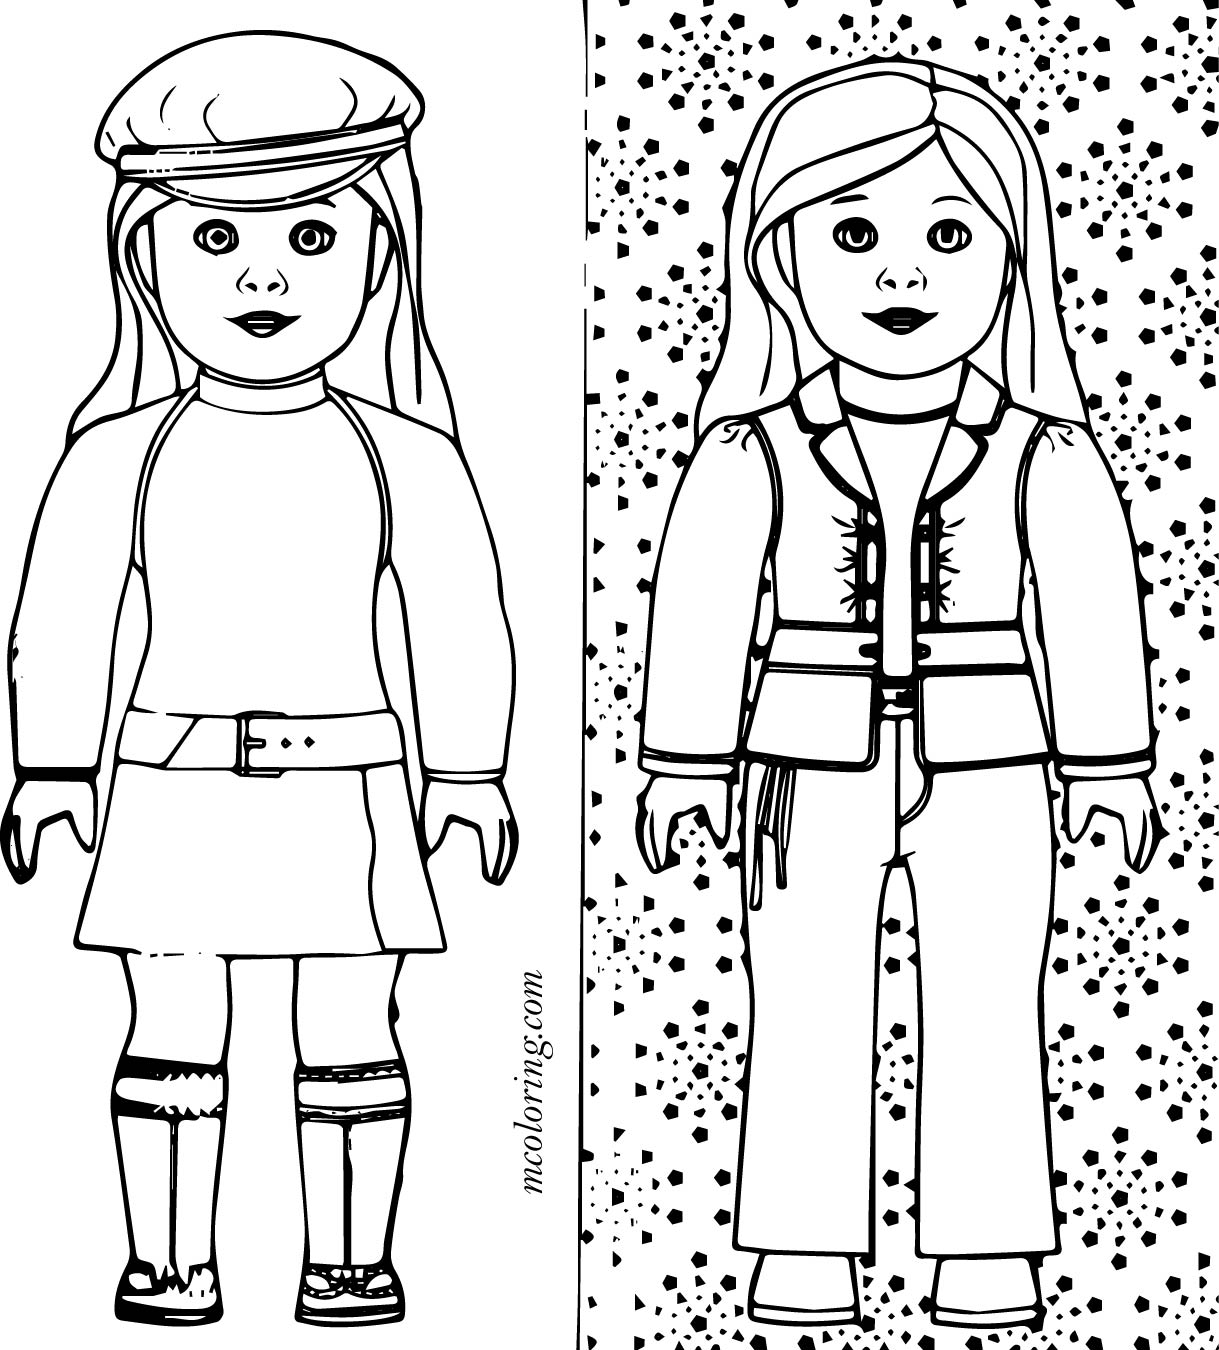 American Girl Doll Coloring Pages To Print At Getdrawings Com Free